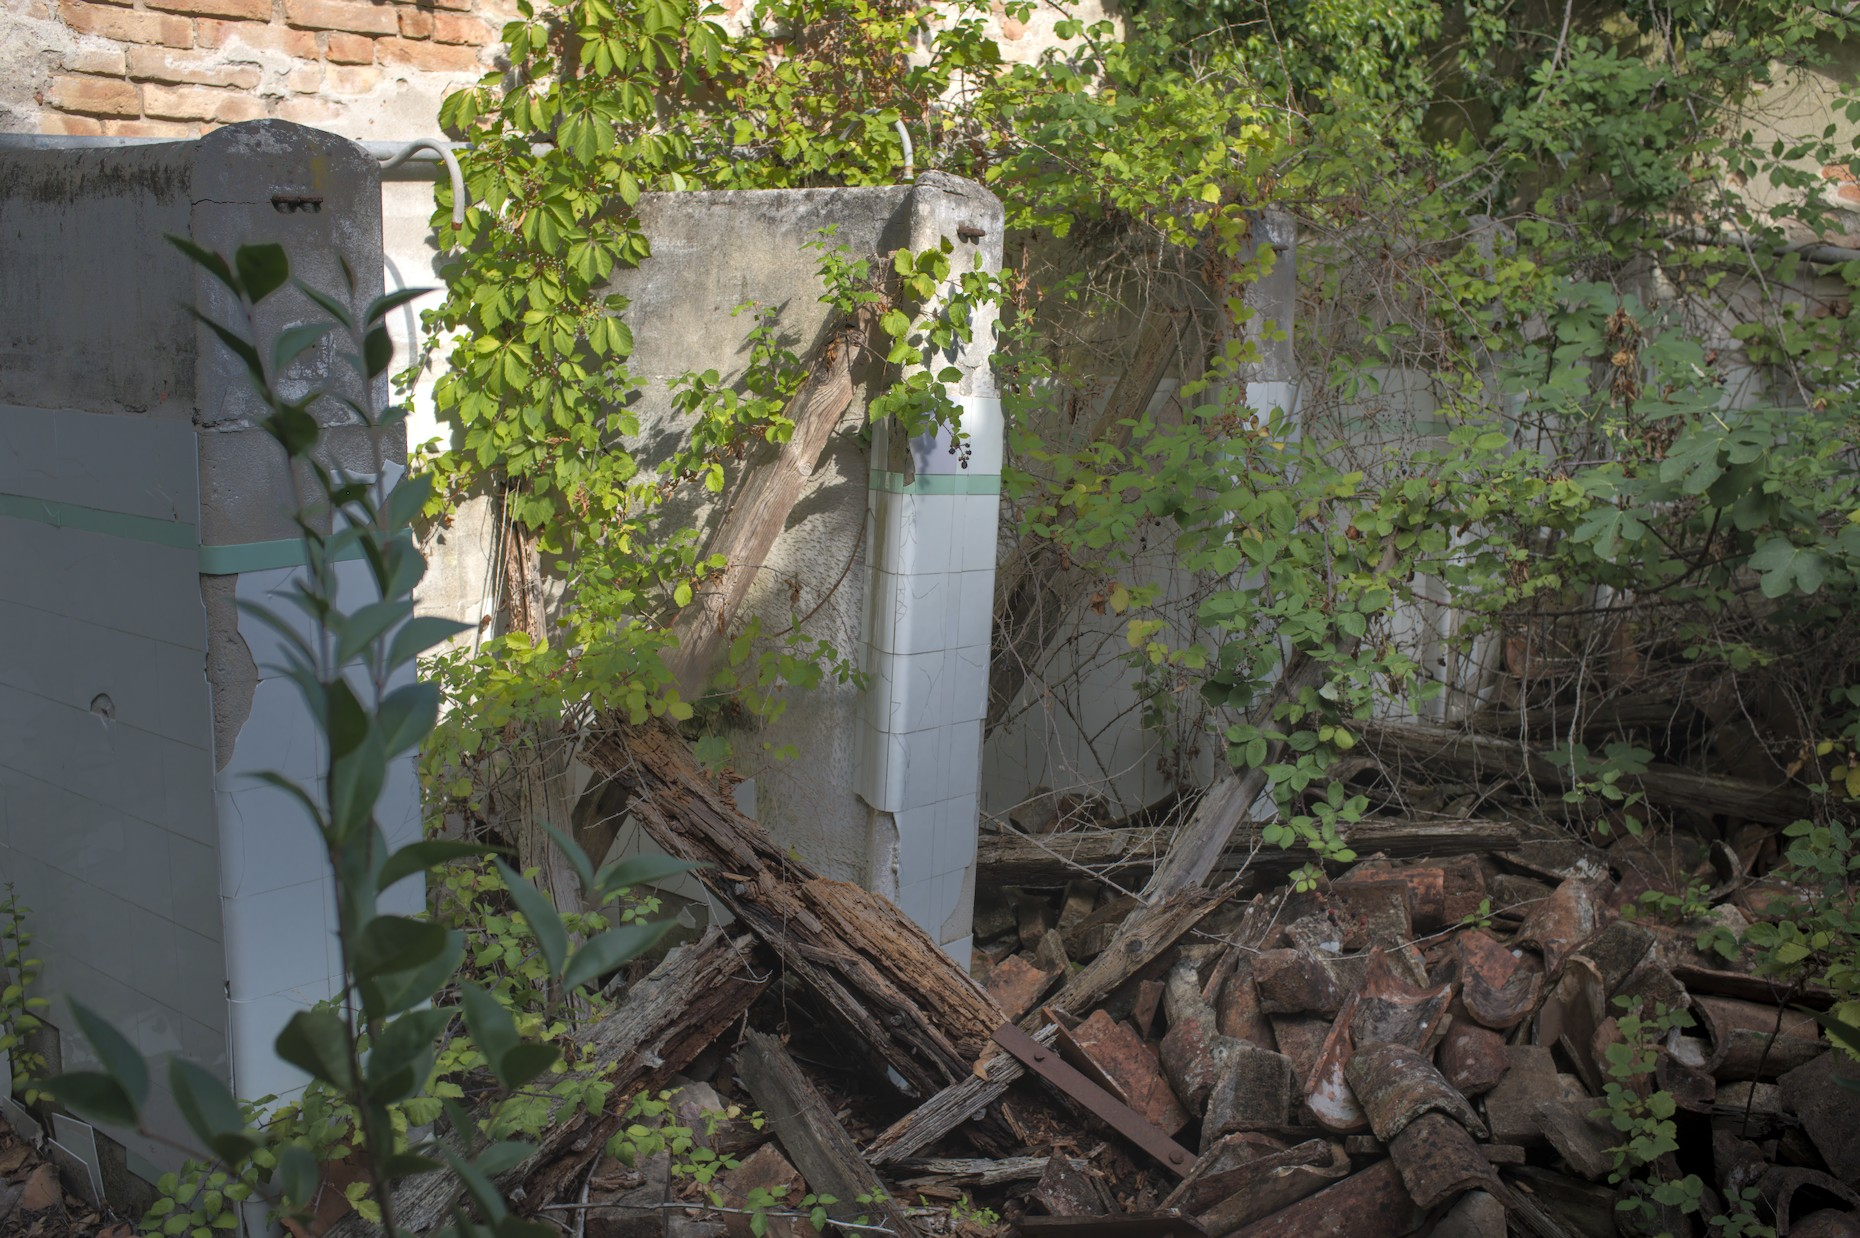 Overgrown and collapsed ruins on Poverglia